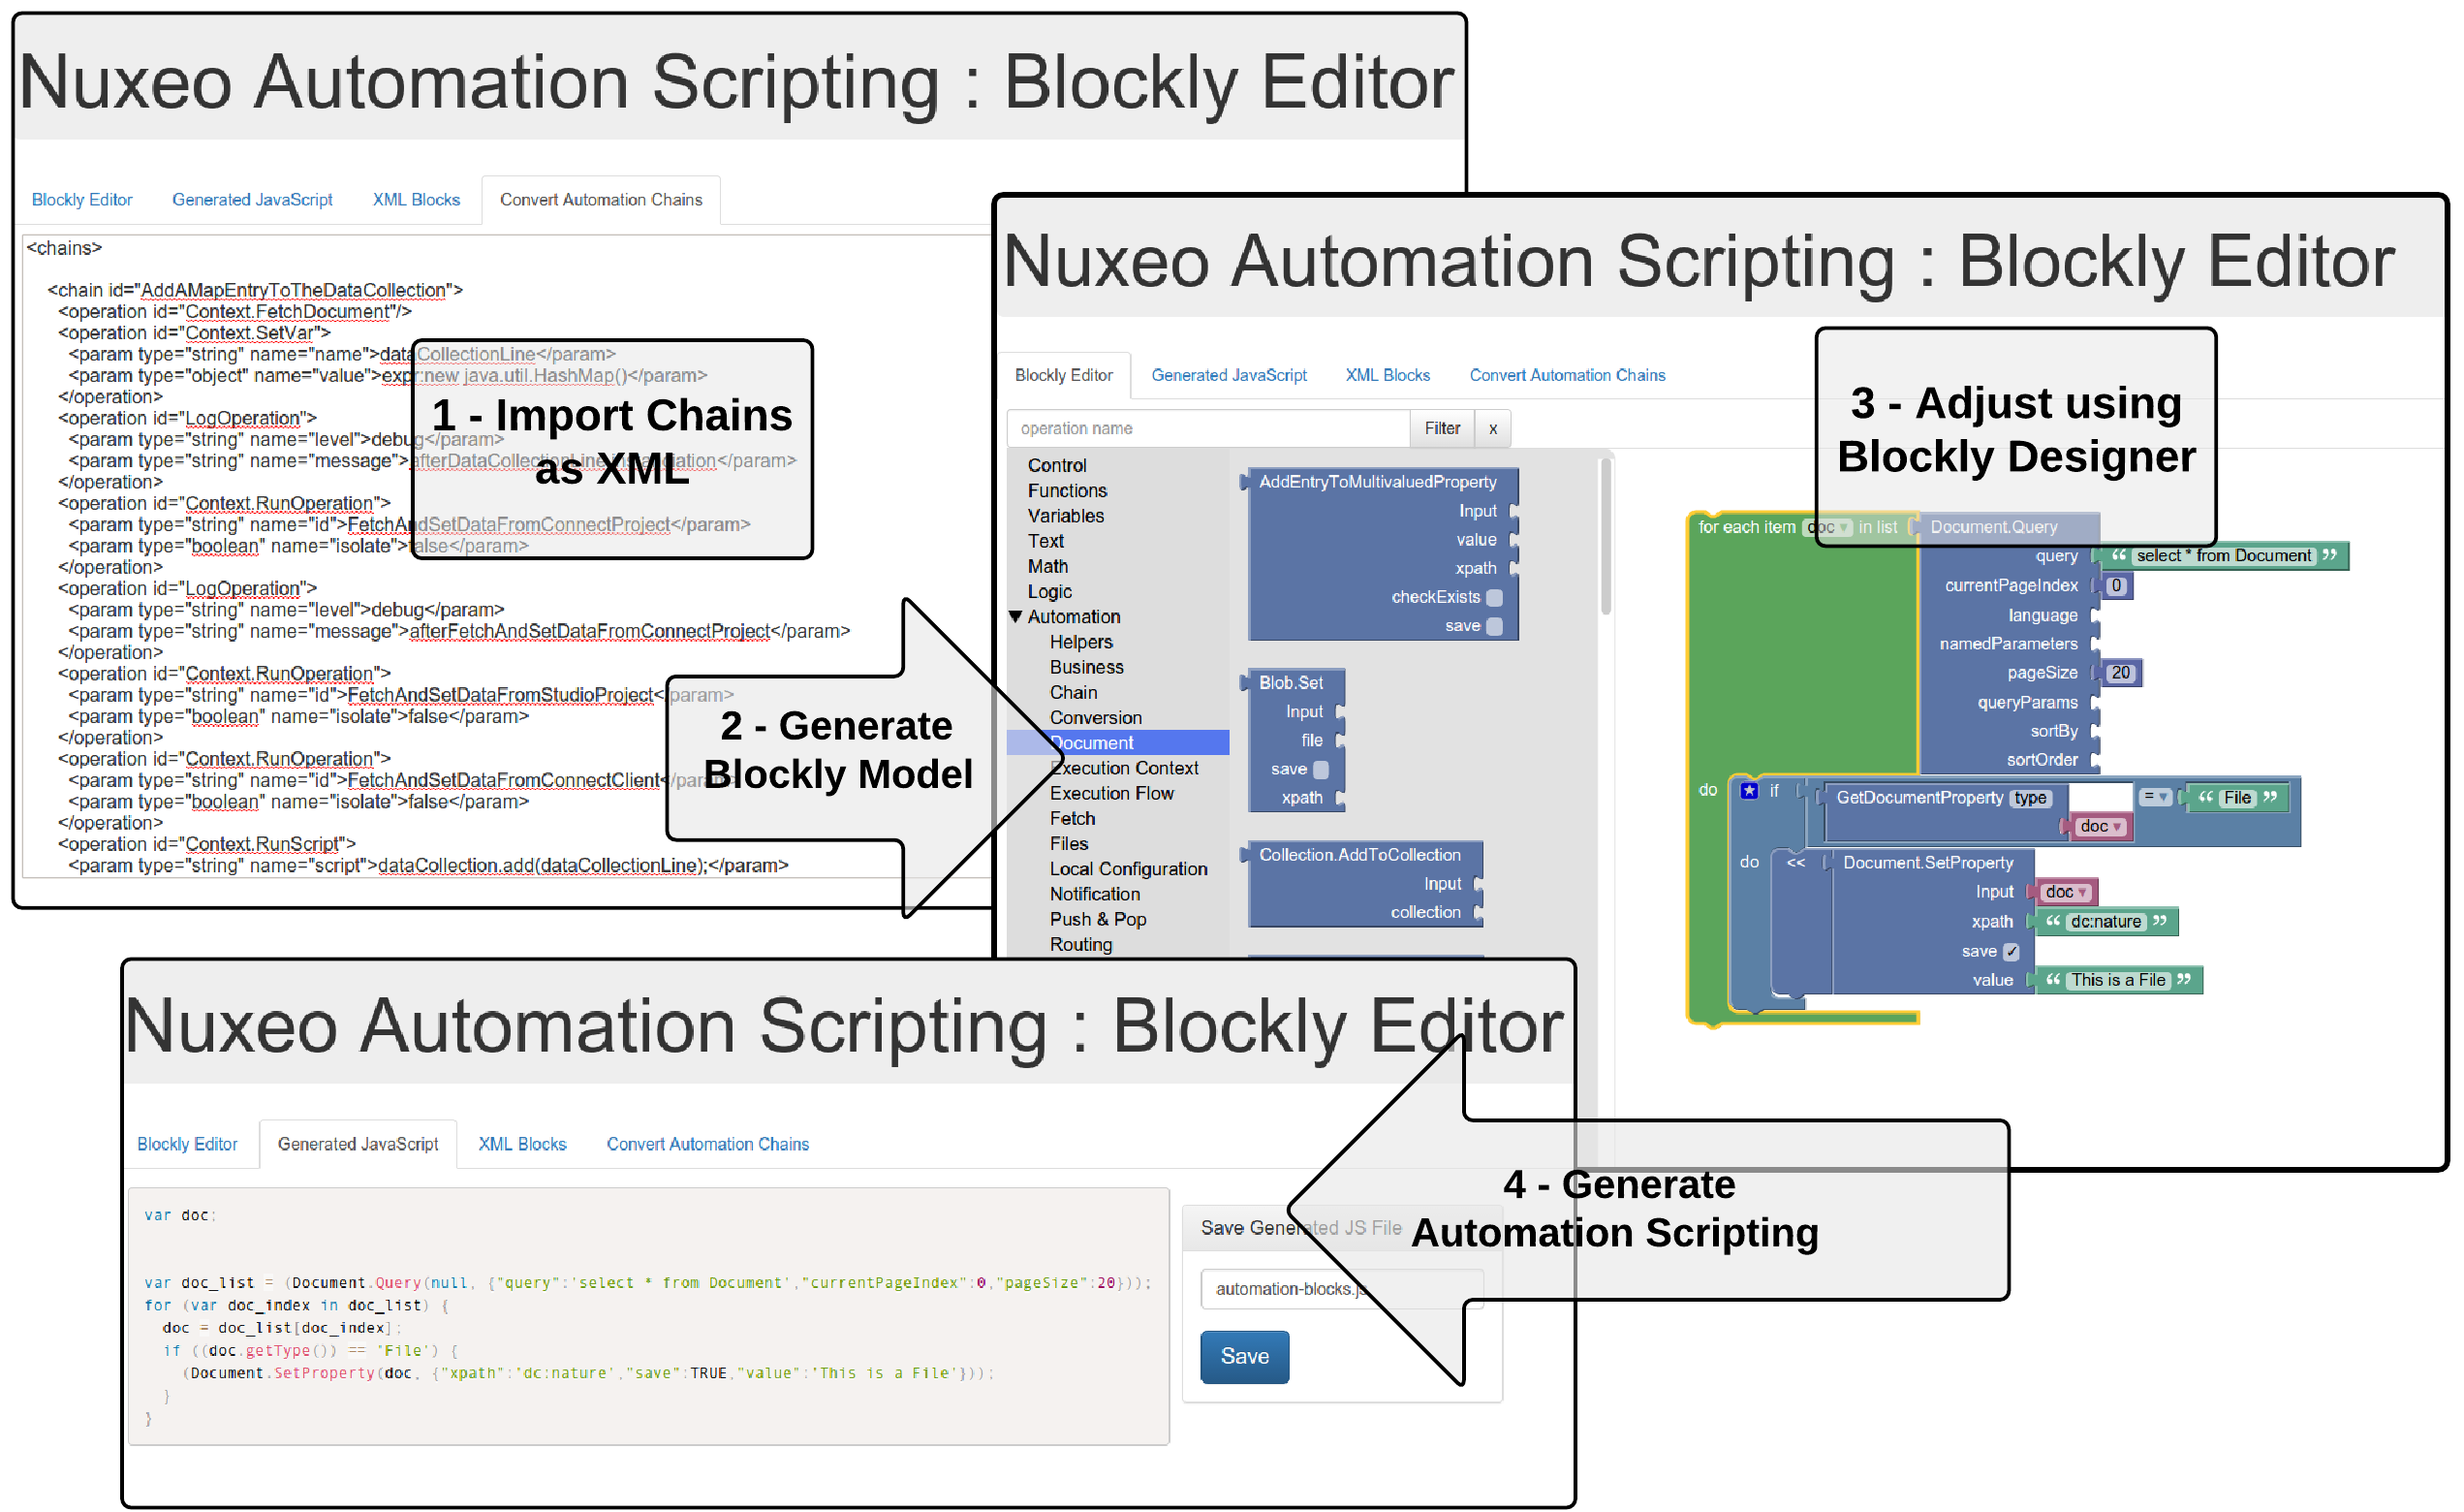 Automation Scripting - Unleashes the power of Nashorn | Nuxeo